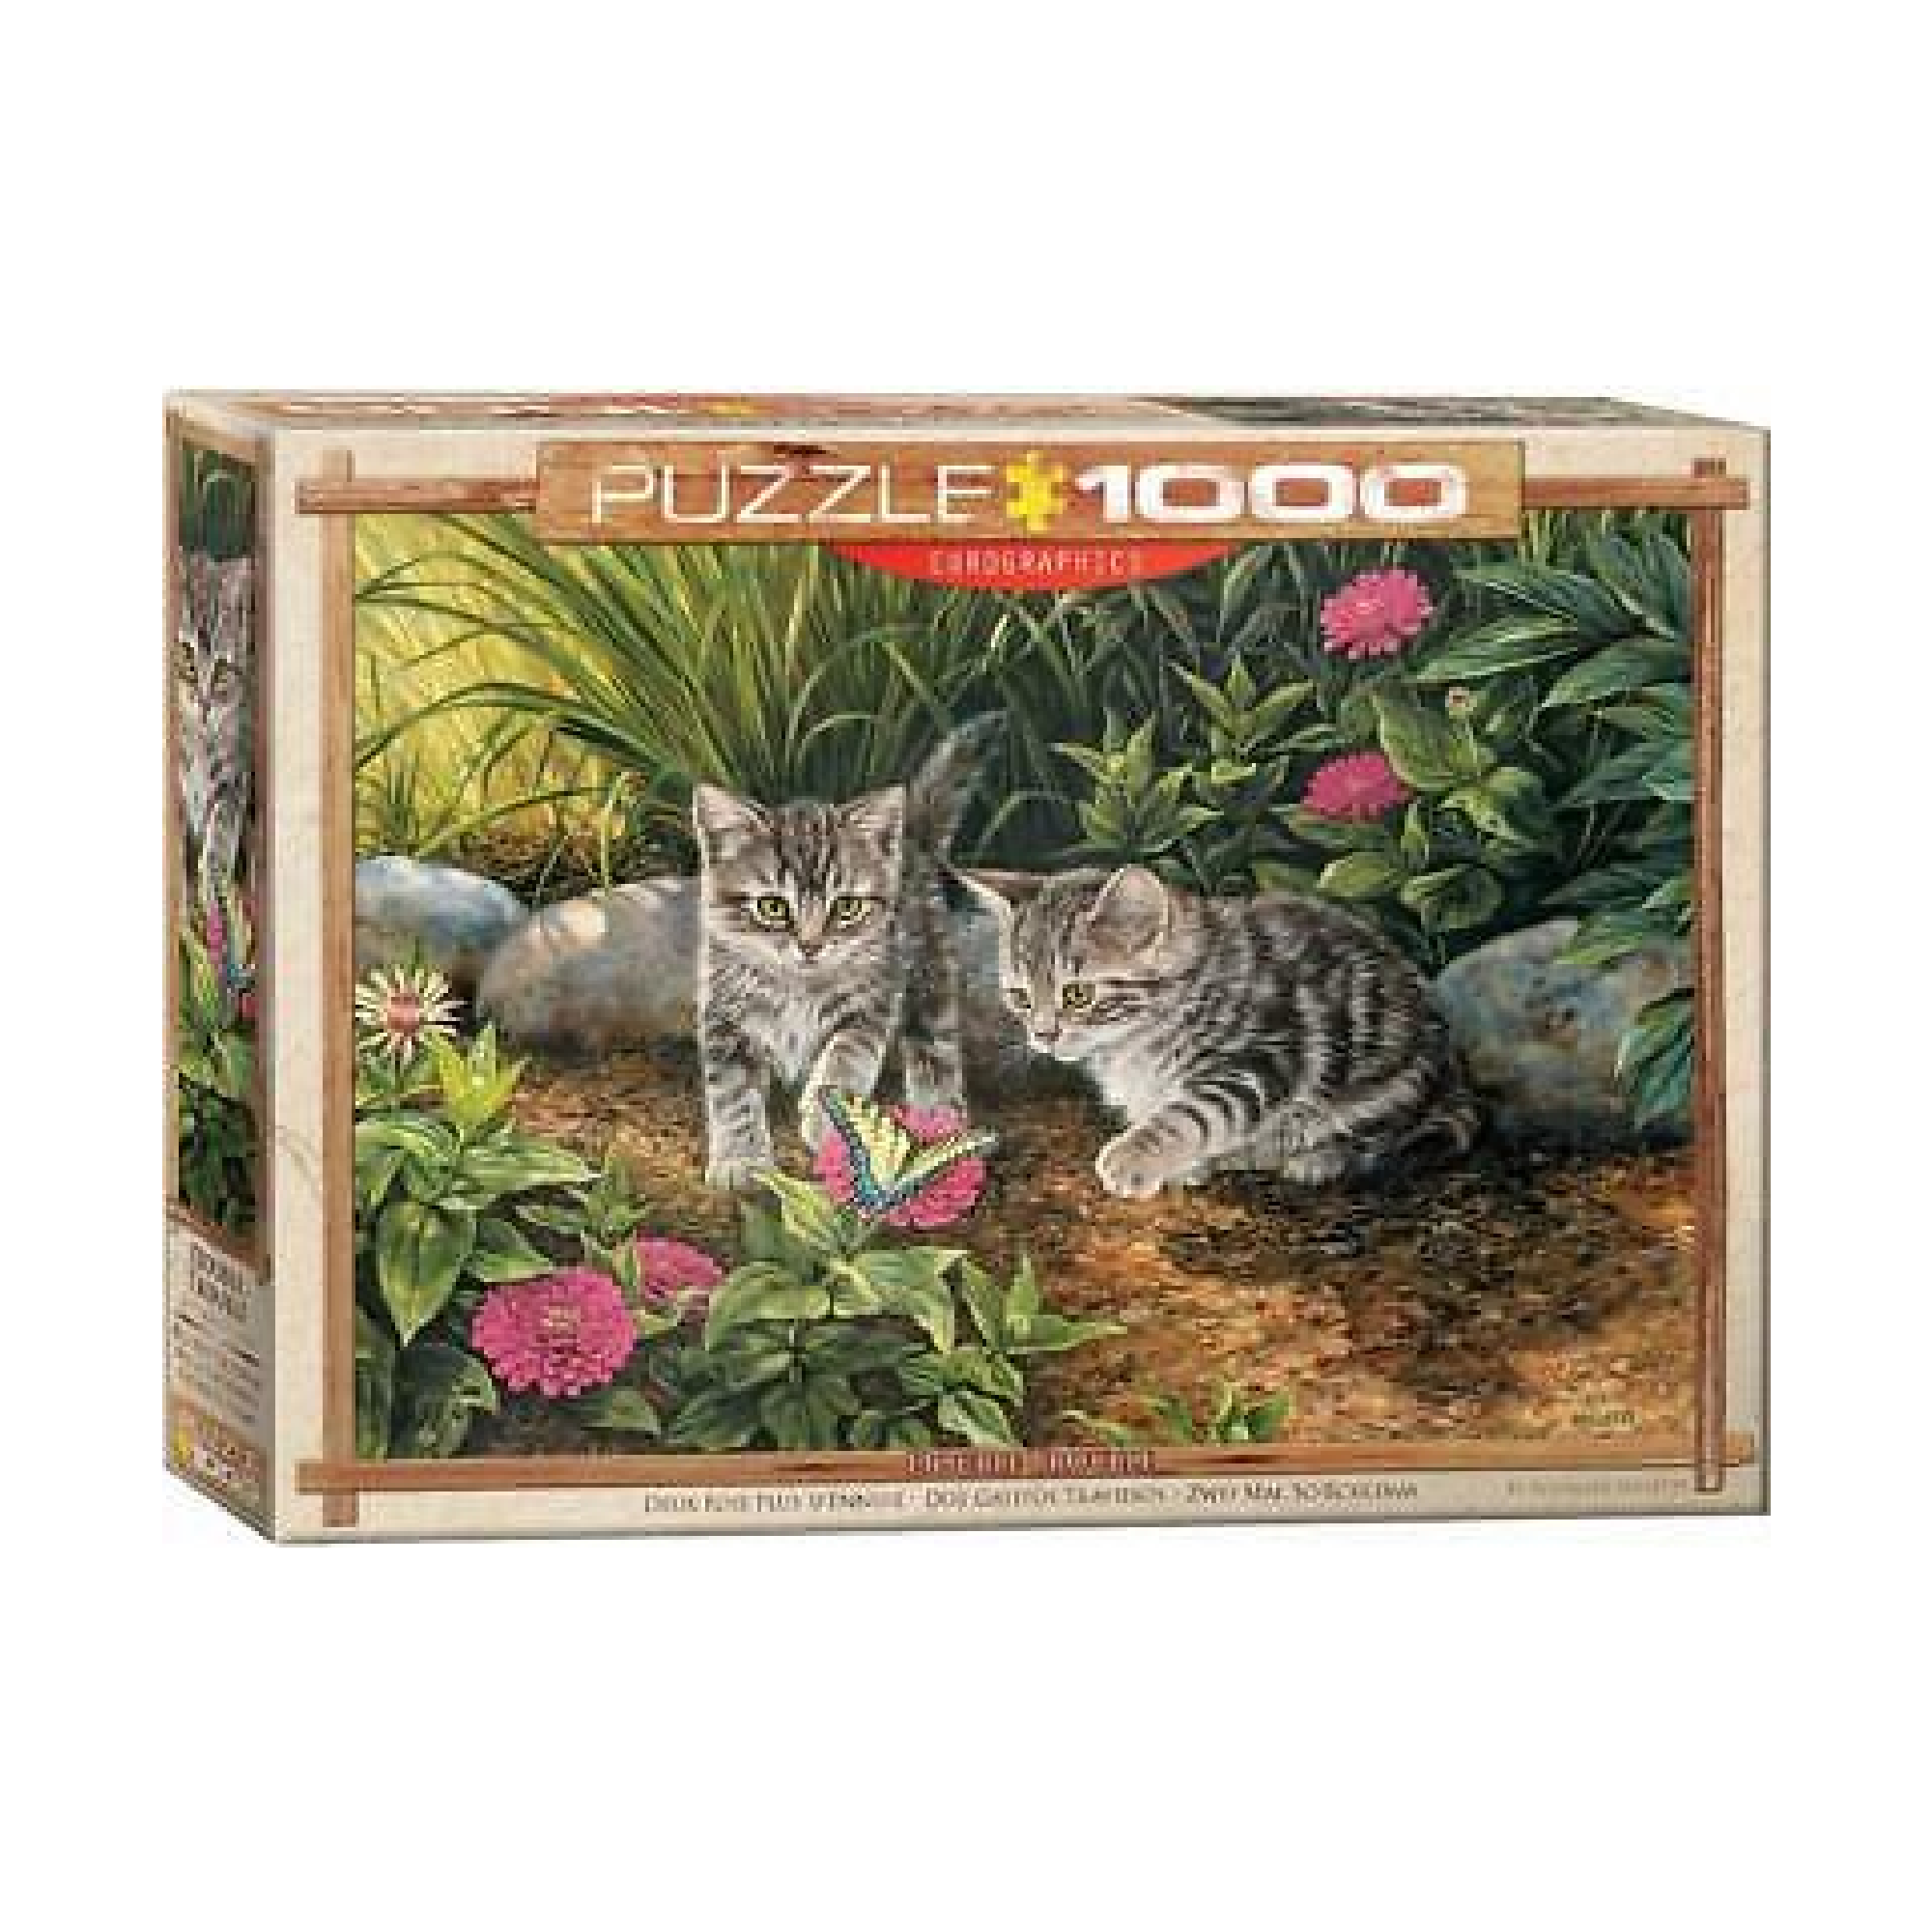 Eurographics Puzzle 1000: Double Trouble by Rosemary Millette